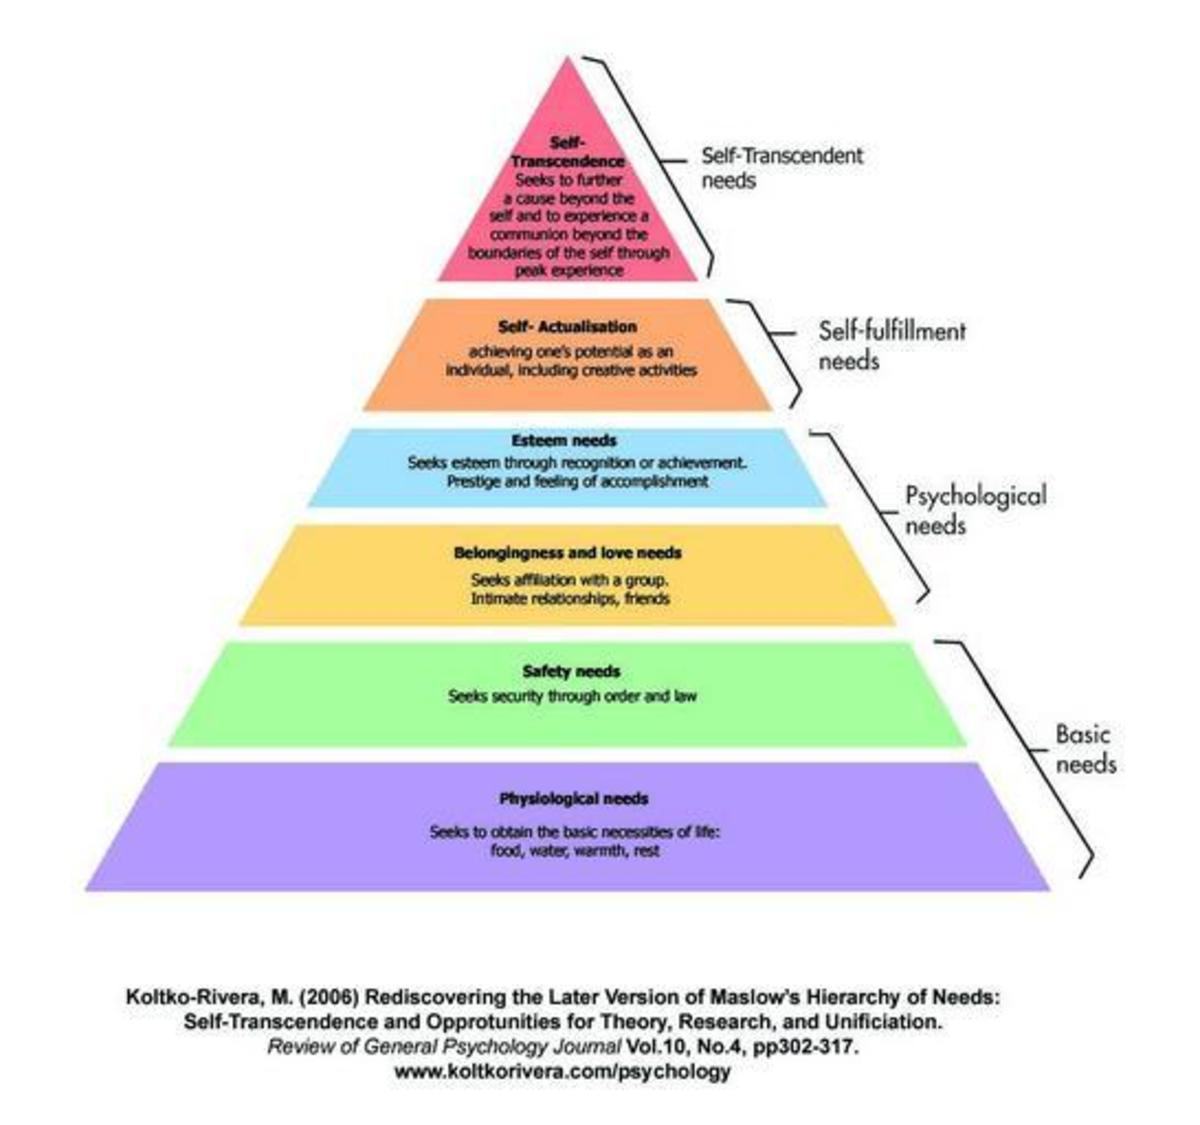 Wellness Focus: Get to Know Dr. Maslow's Hierarchy of Needs